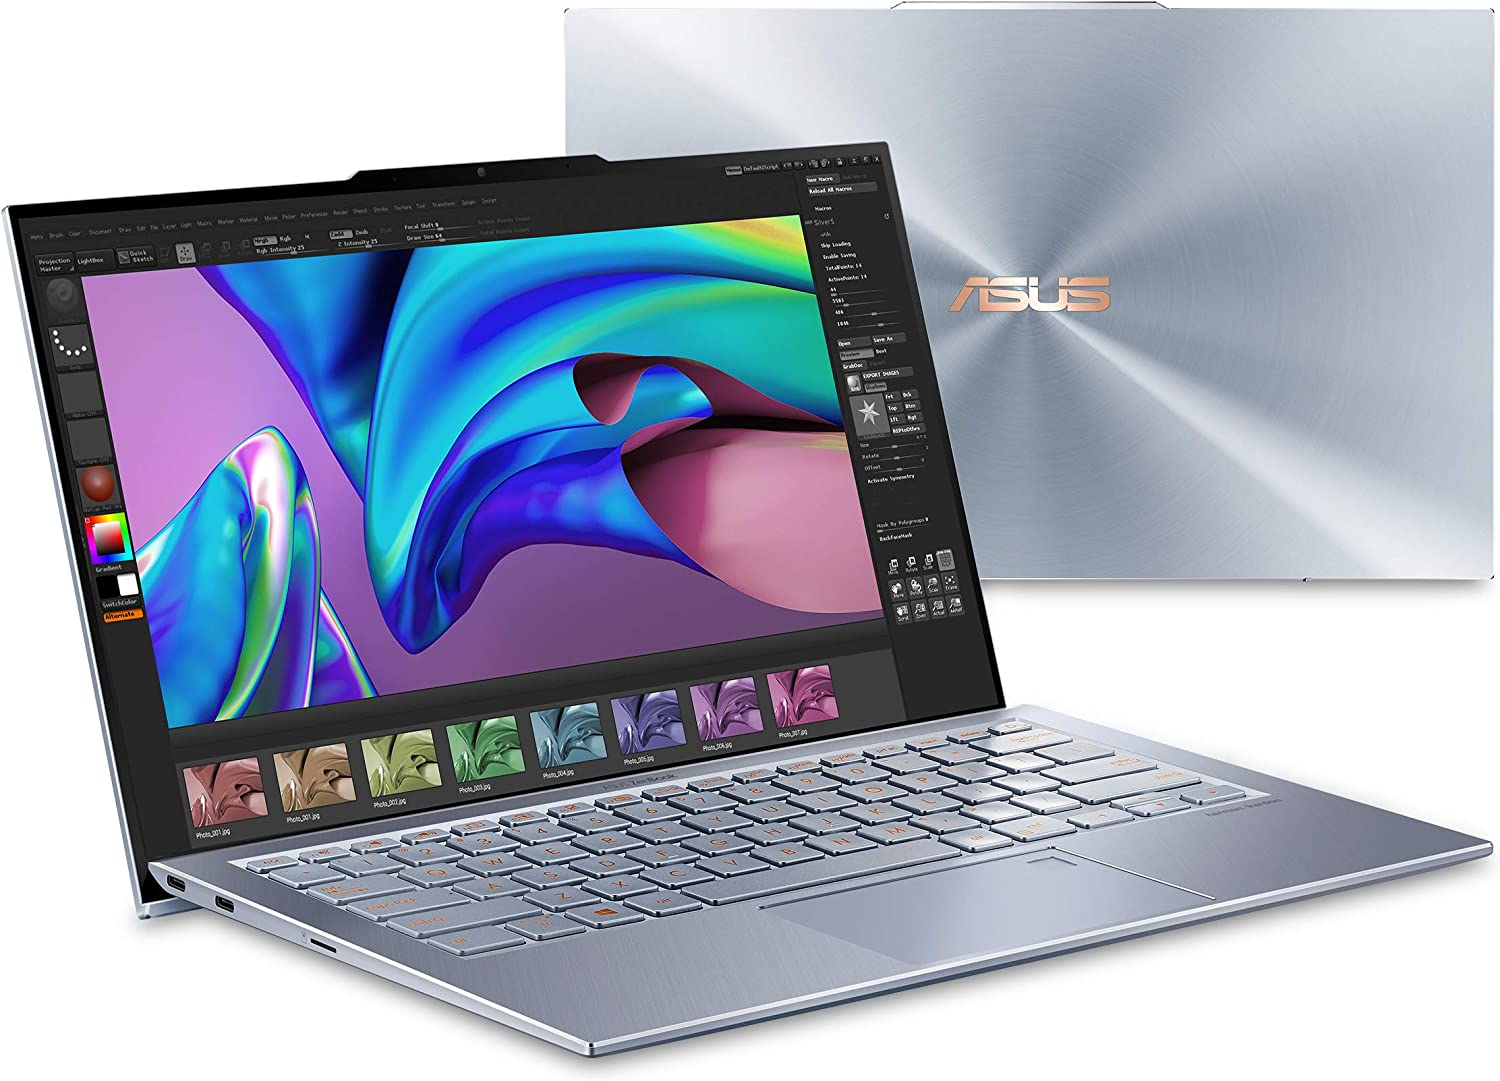 "ASUS ZenBook S13 Ultra Thin & Light Laptop 13.9"" FHD, Intel Core i7-8565U CPU, GeForce MX150, 8GB RAM, 512GB PCIe SSD, Windows 10 Pro, Silver Blue, UX392FN-XS71"